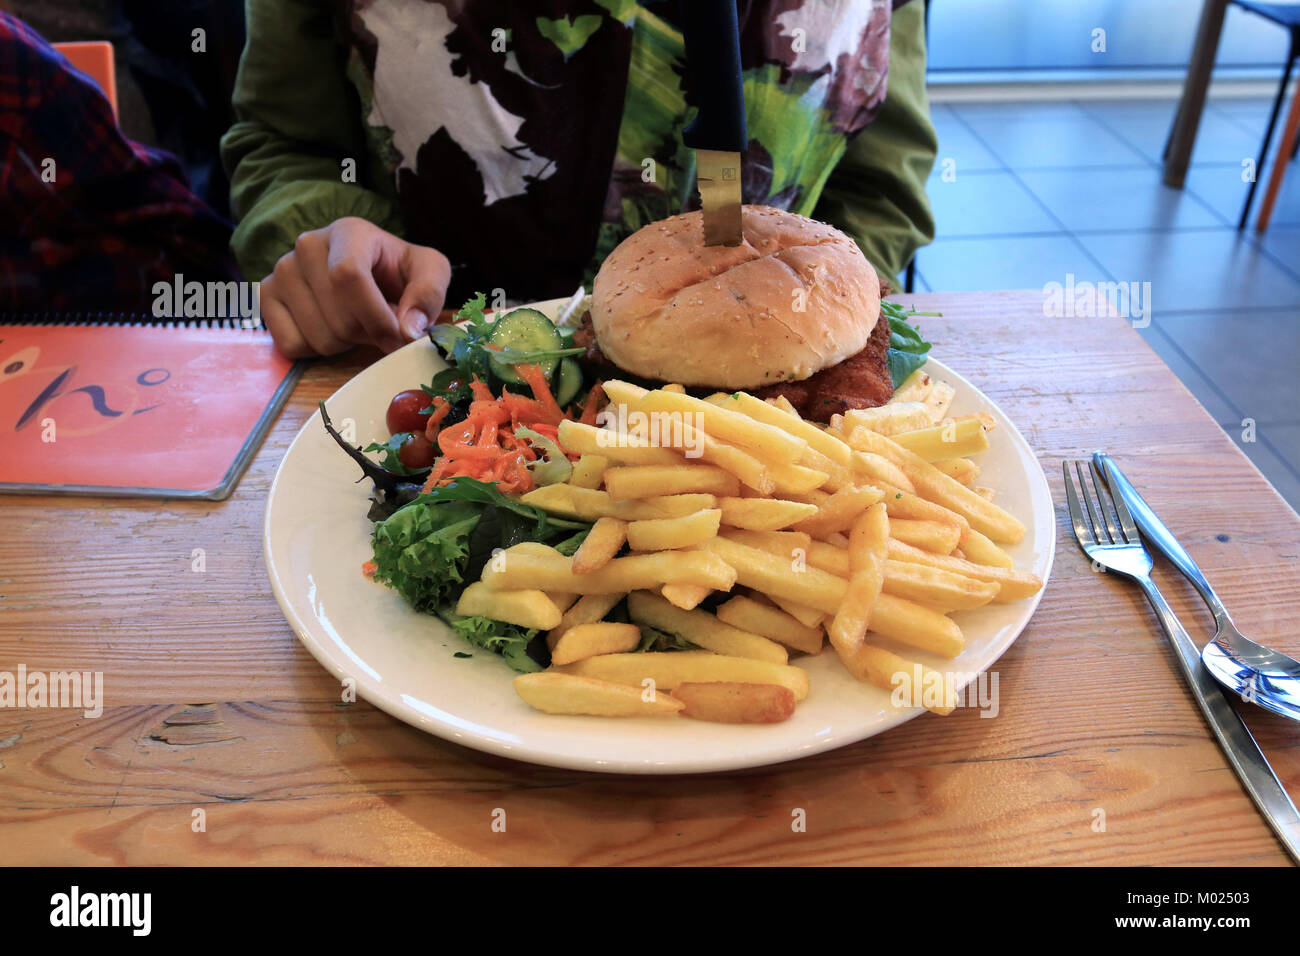 Chicken Schnitzel Burger With Fresh Salad And Chips On A White Plate Stock Photo Alamy